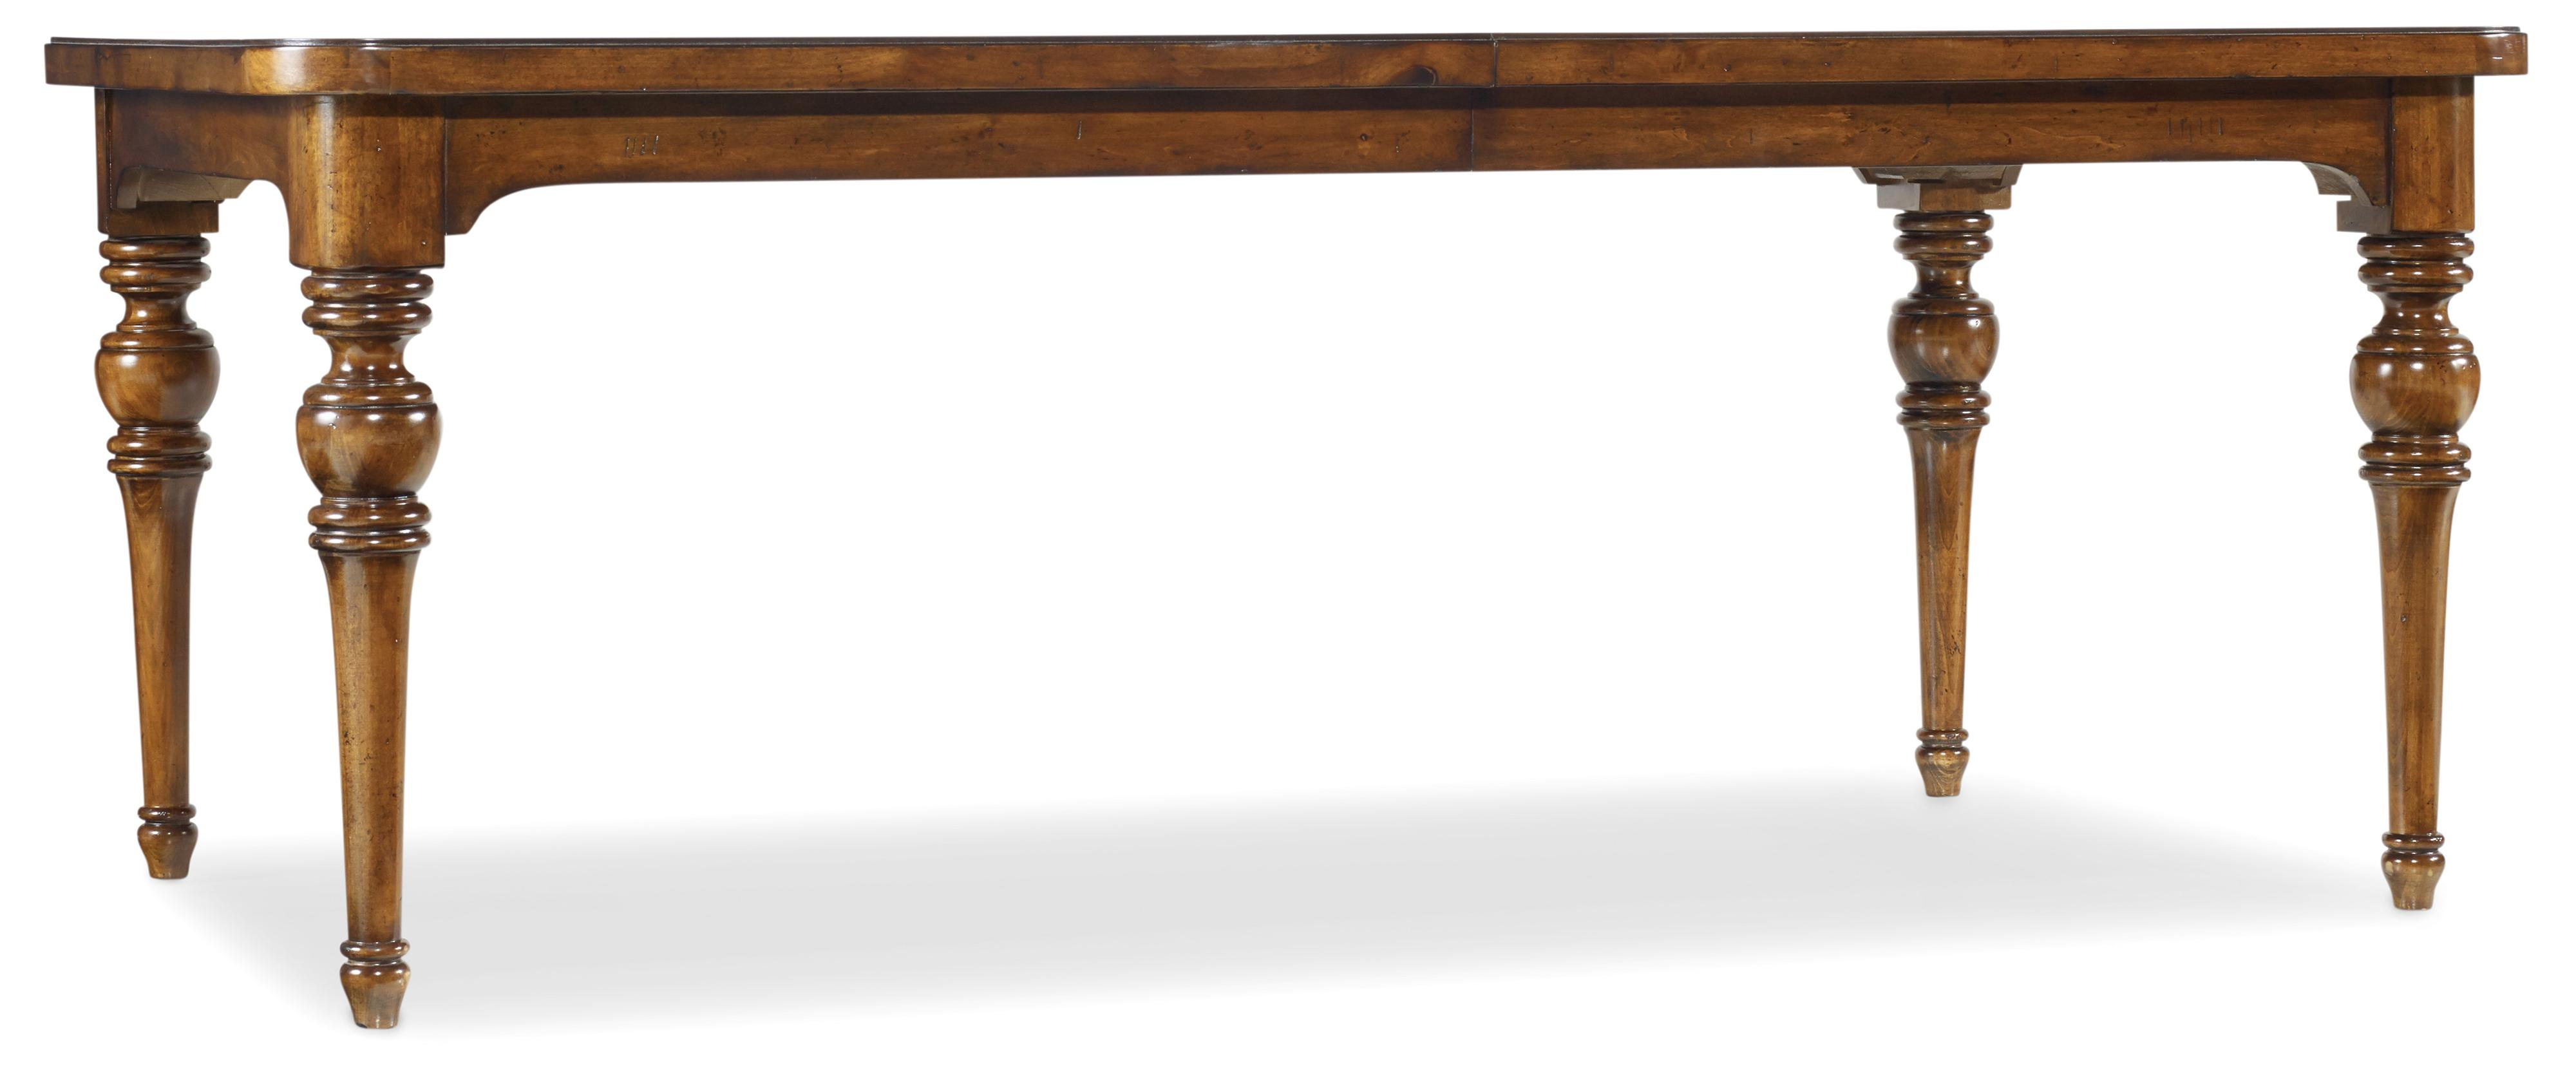 Tynecastle Dining Table by Hooker Furniture at Upper Room Home Furnishings